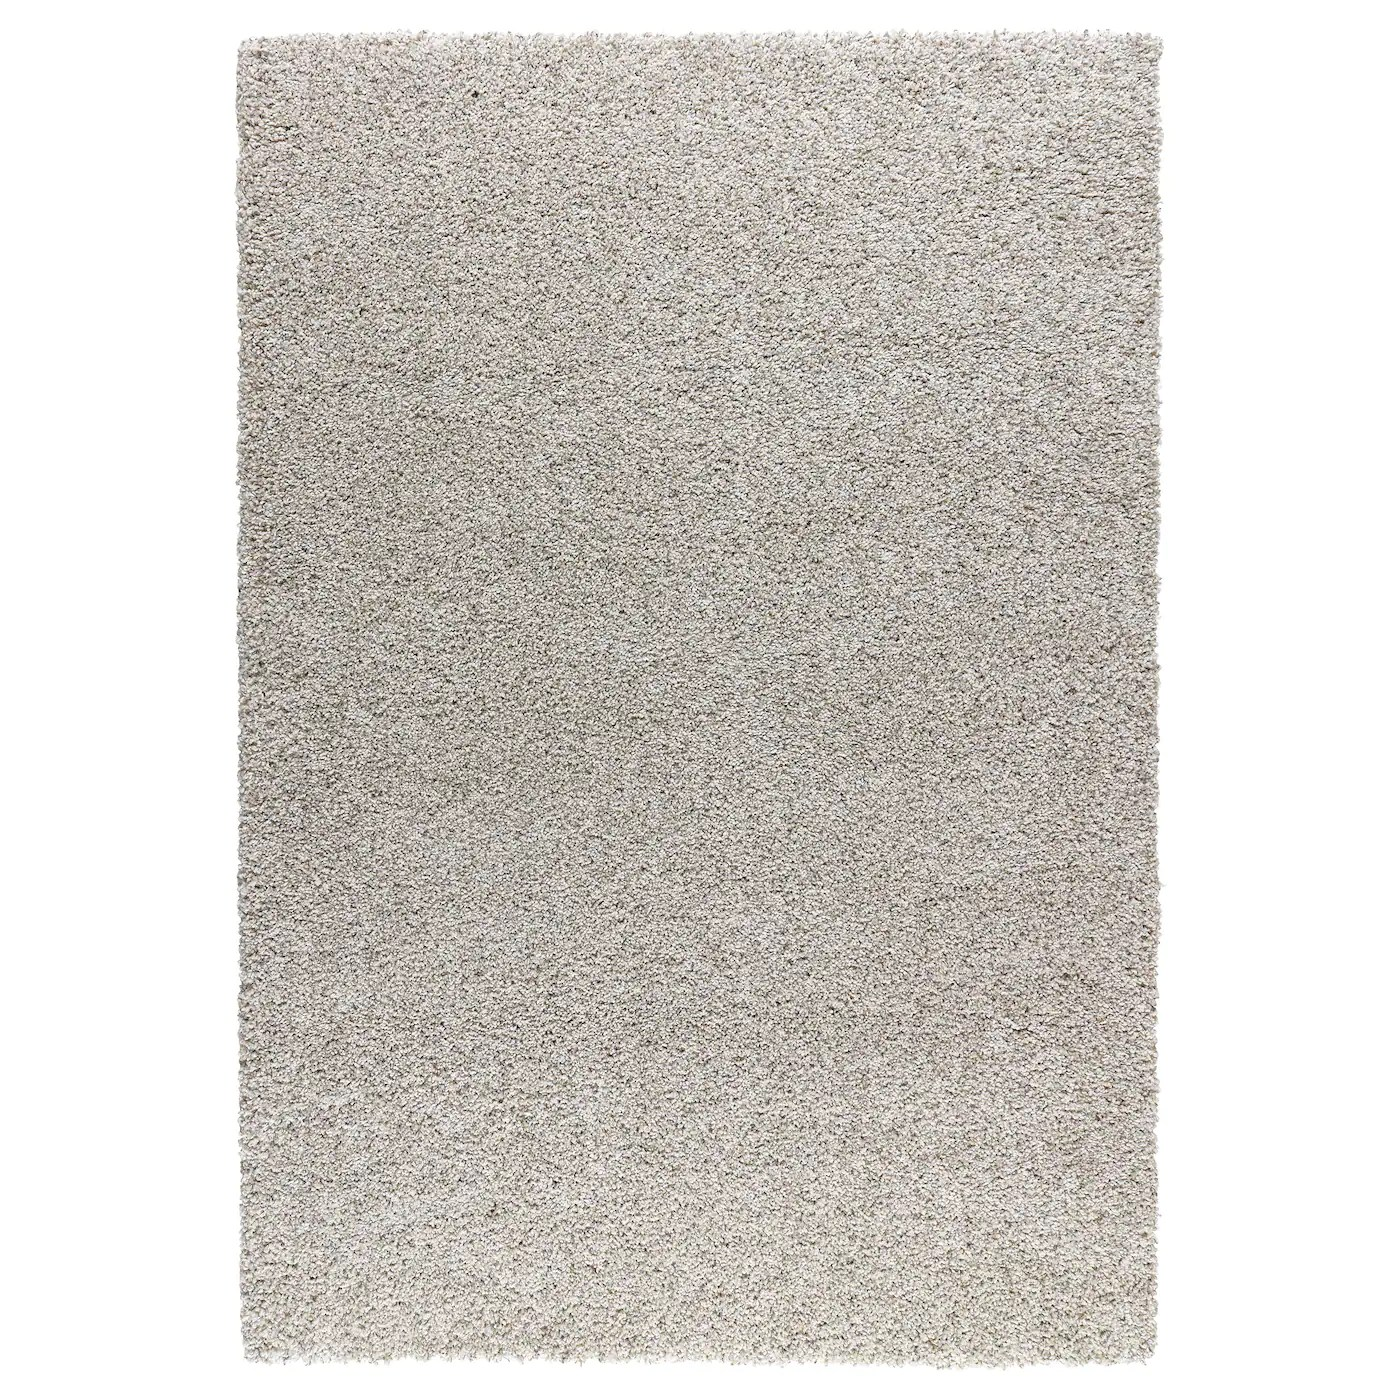 Ikea Teppich Off White Alhede Rug High Pile Off White 160x240 Cm Ikea